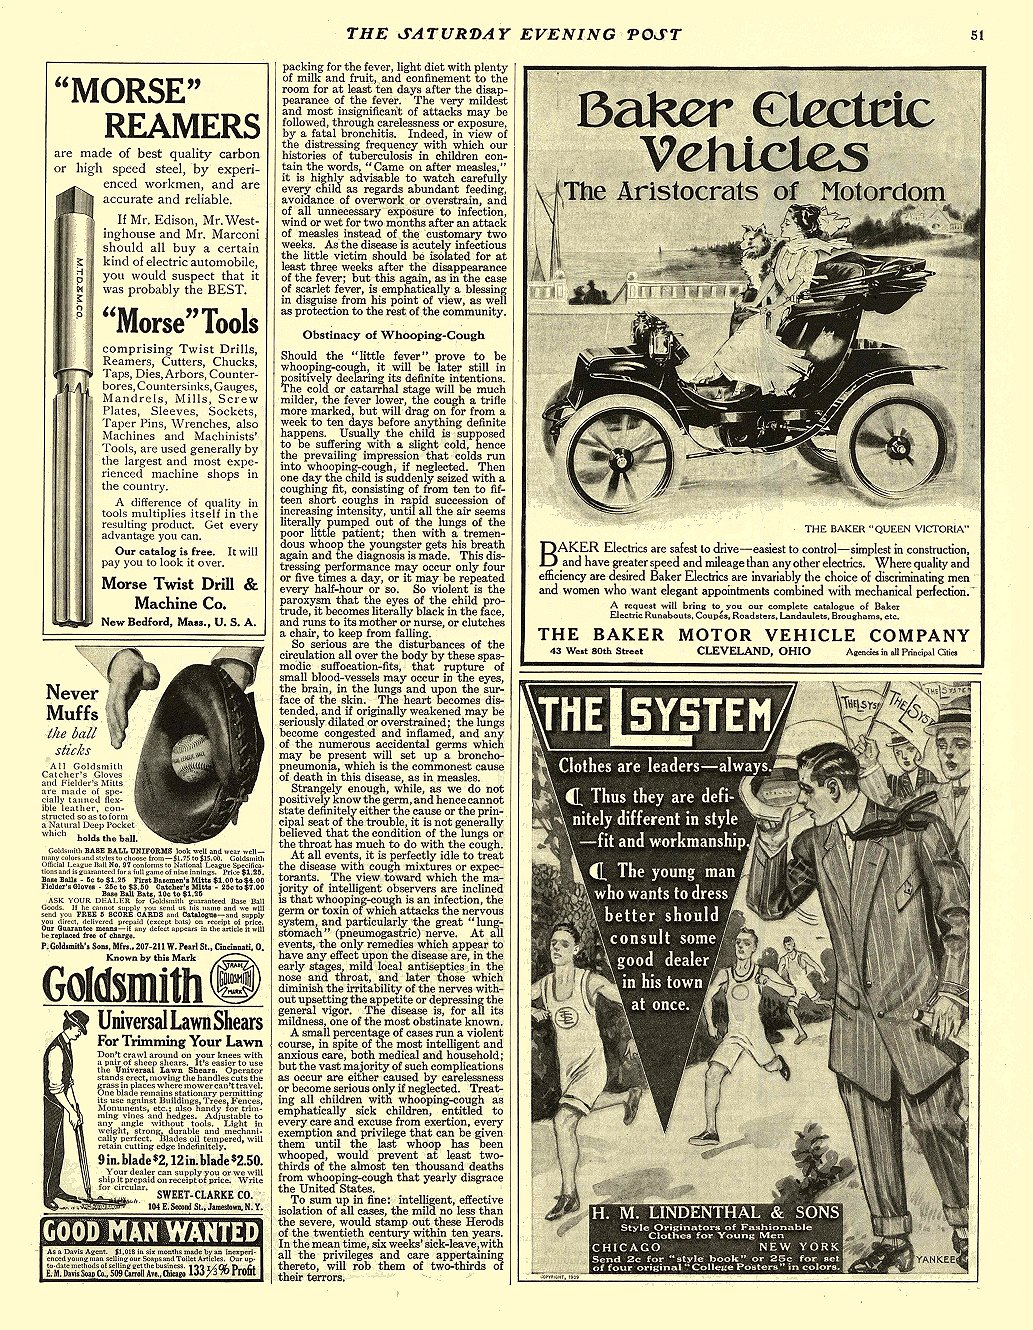 1909 4 24 BAKER Electric The Aristocrats of Motordom BAKER MOTOR VEHICLE COMPANY Cleveland, OHIO THE SATURDAY EVENING POST April 24, 1909 10.25″x14″ page 51